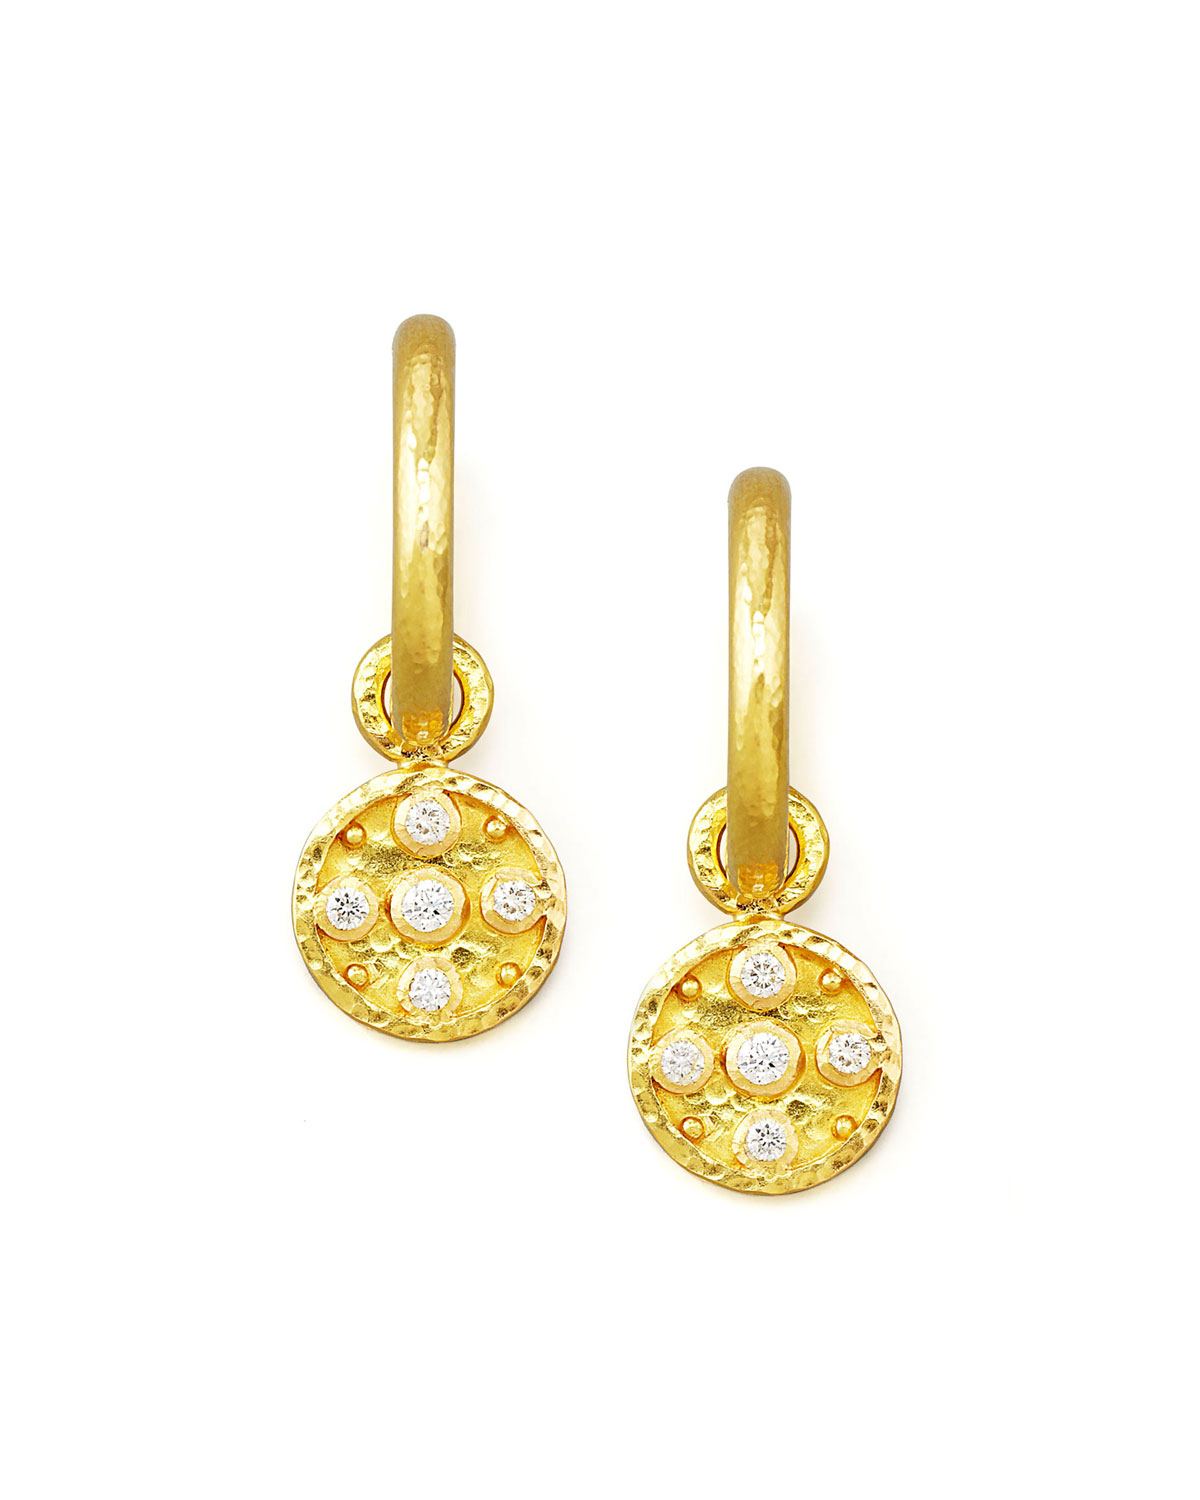 Elizabeth Locke 19k Gold Diamond Disc Earring Pendants qWoPYLC